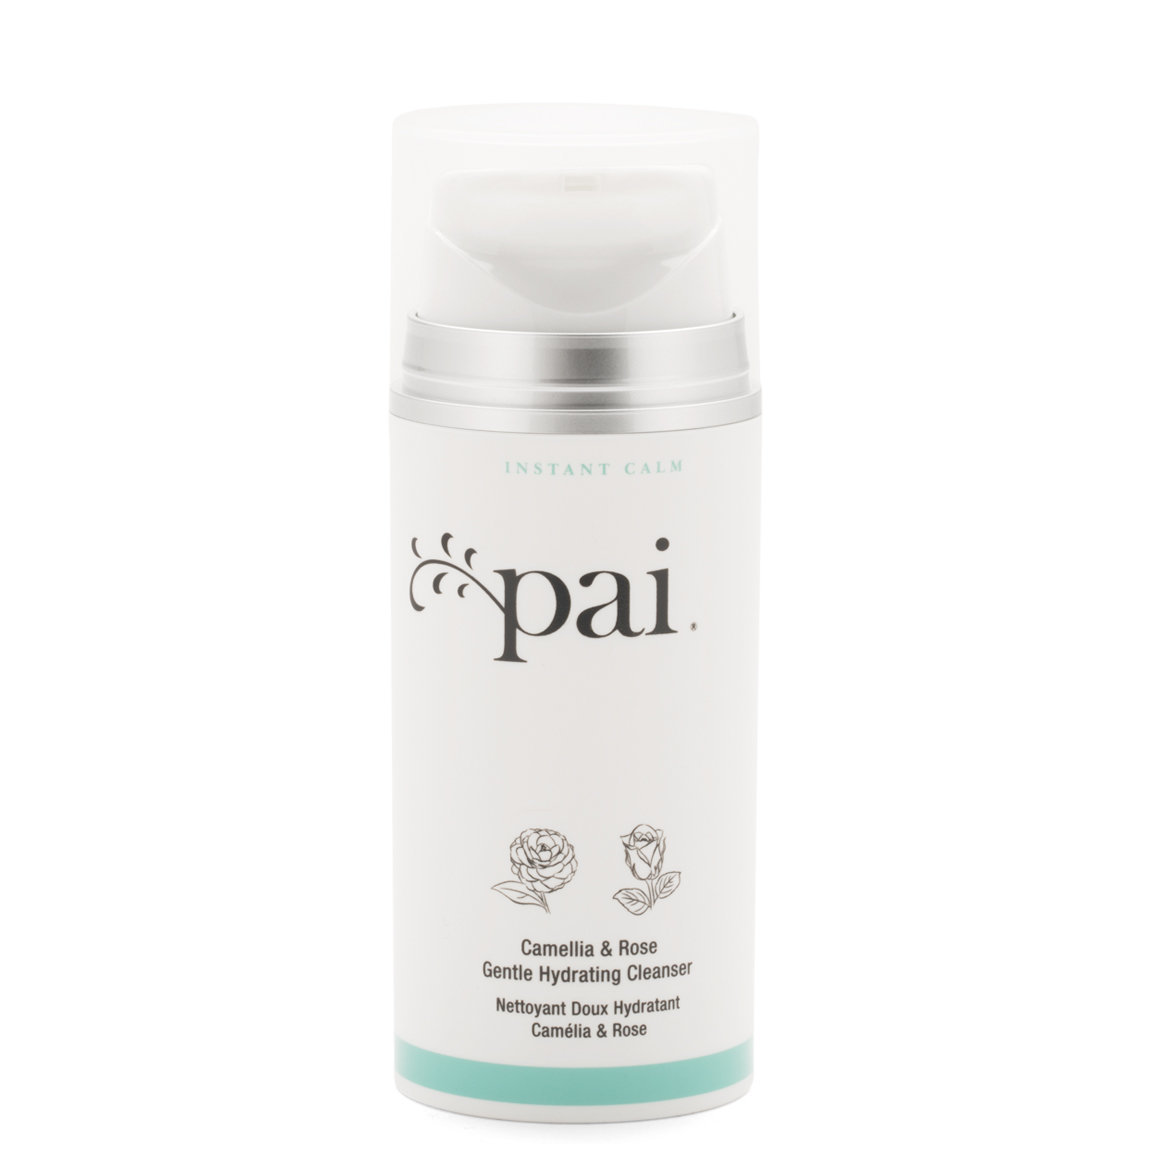 Pai Skincare Camellia & Rose Gentle Hydrating Cleanser 100 ml product smear.